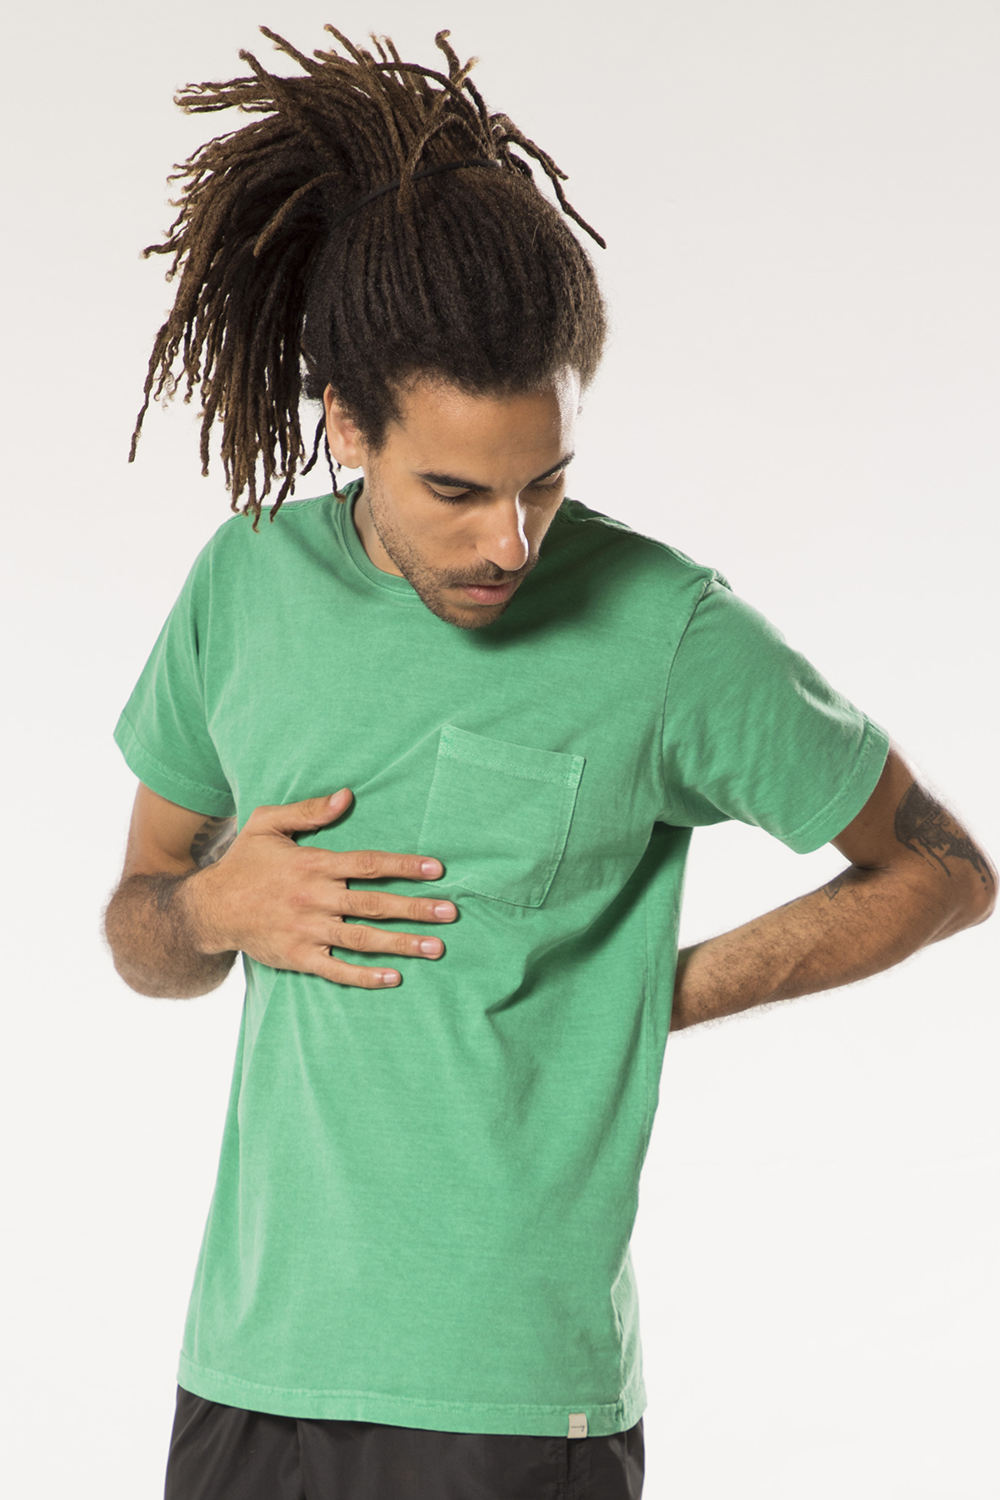 T-SHIRTS MADE IN GUARDA